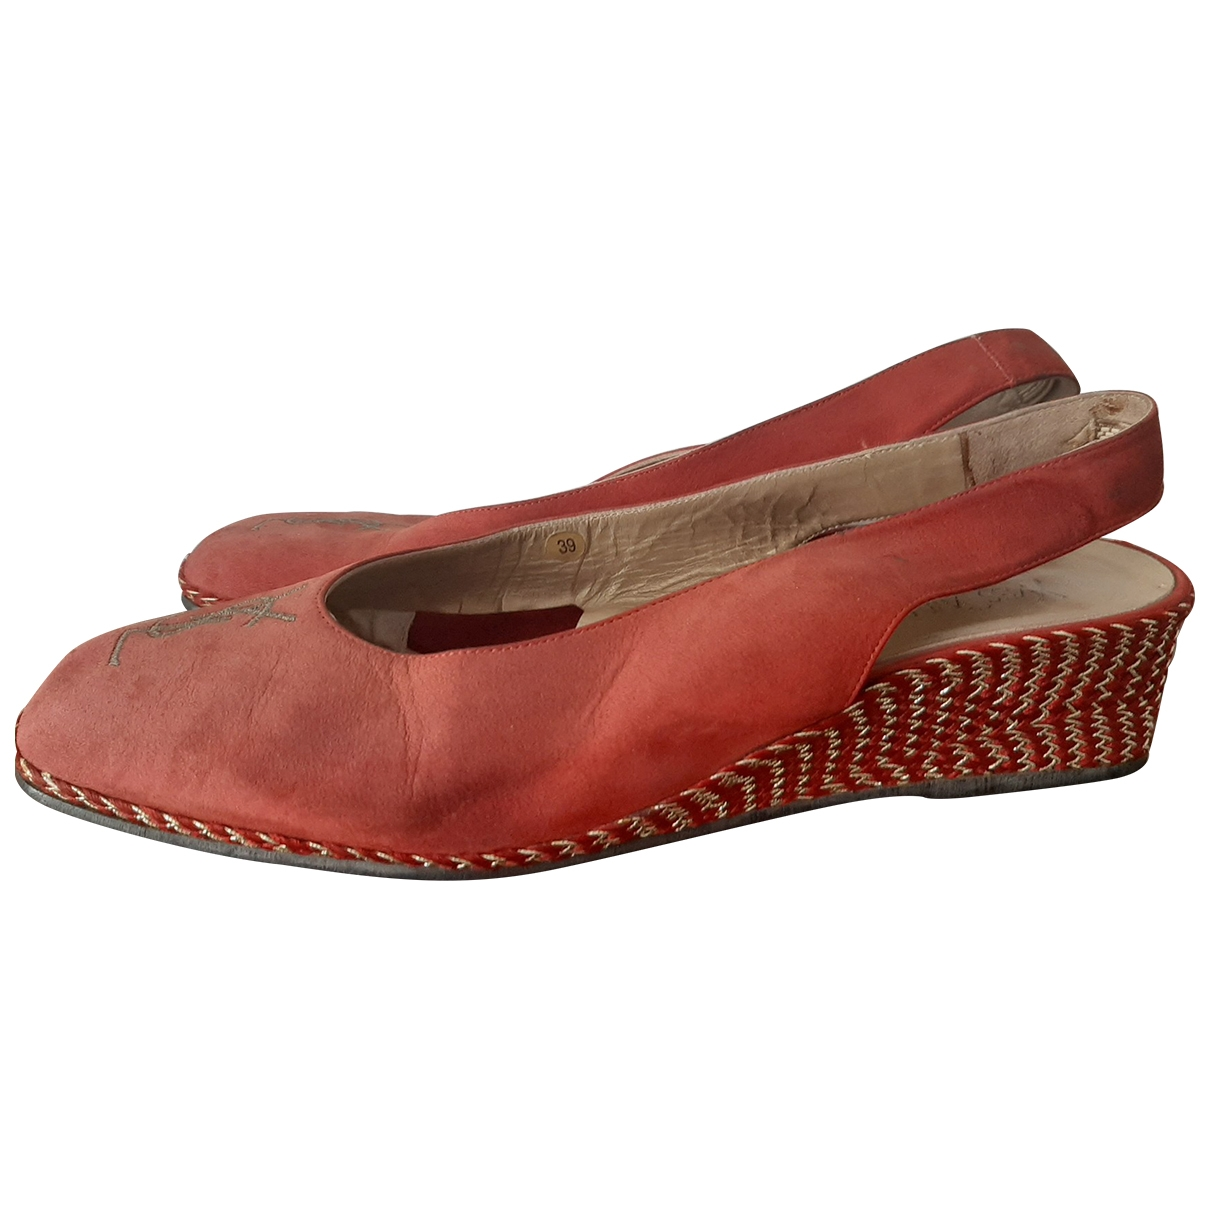 Yves Saint Laurent \N Espadrilles in  Rot Leinen